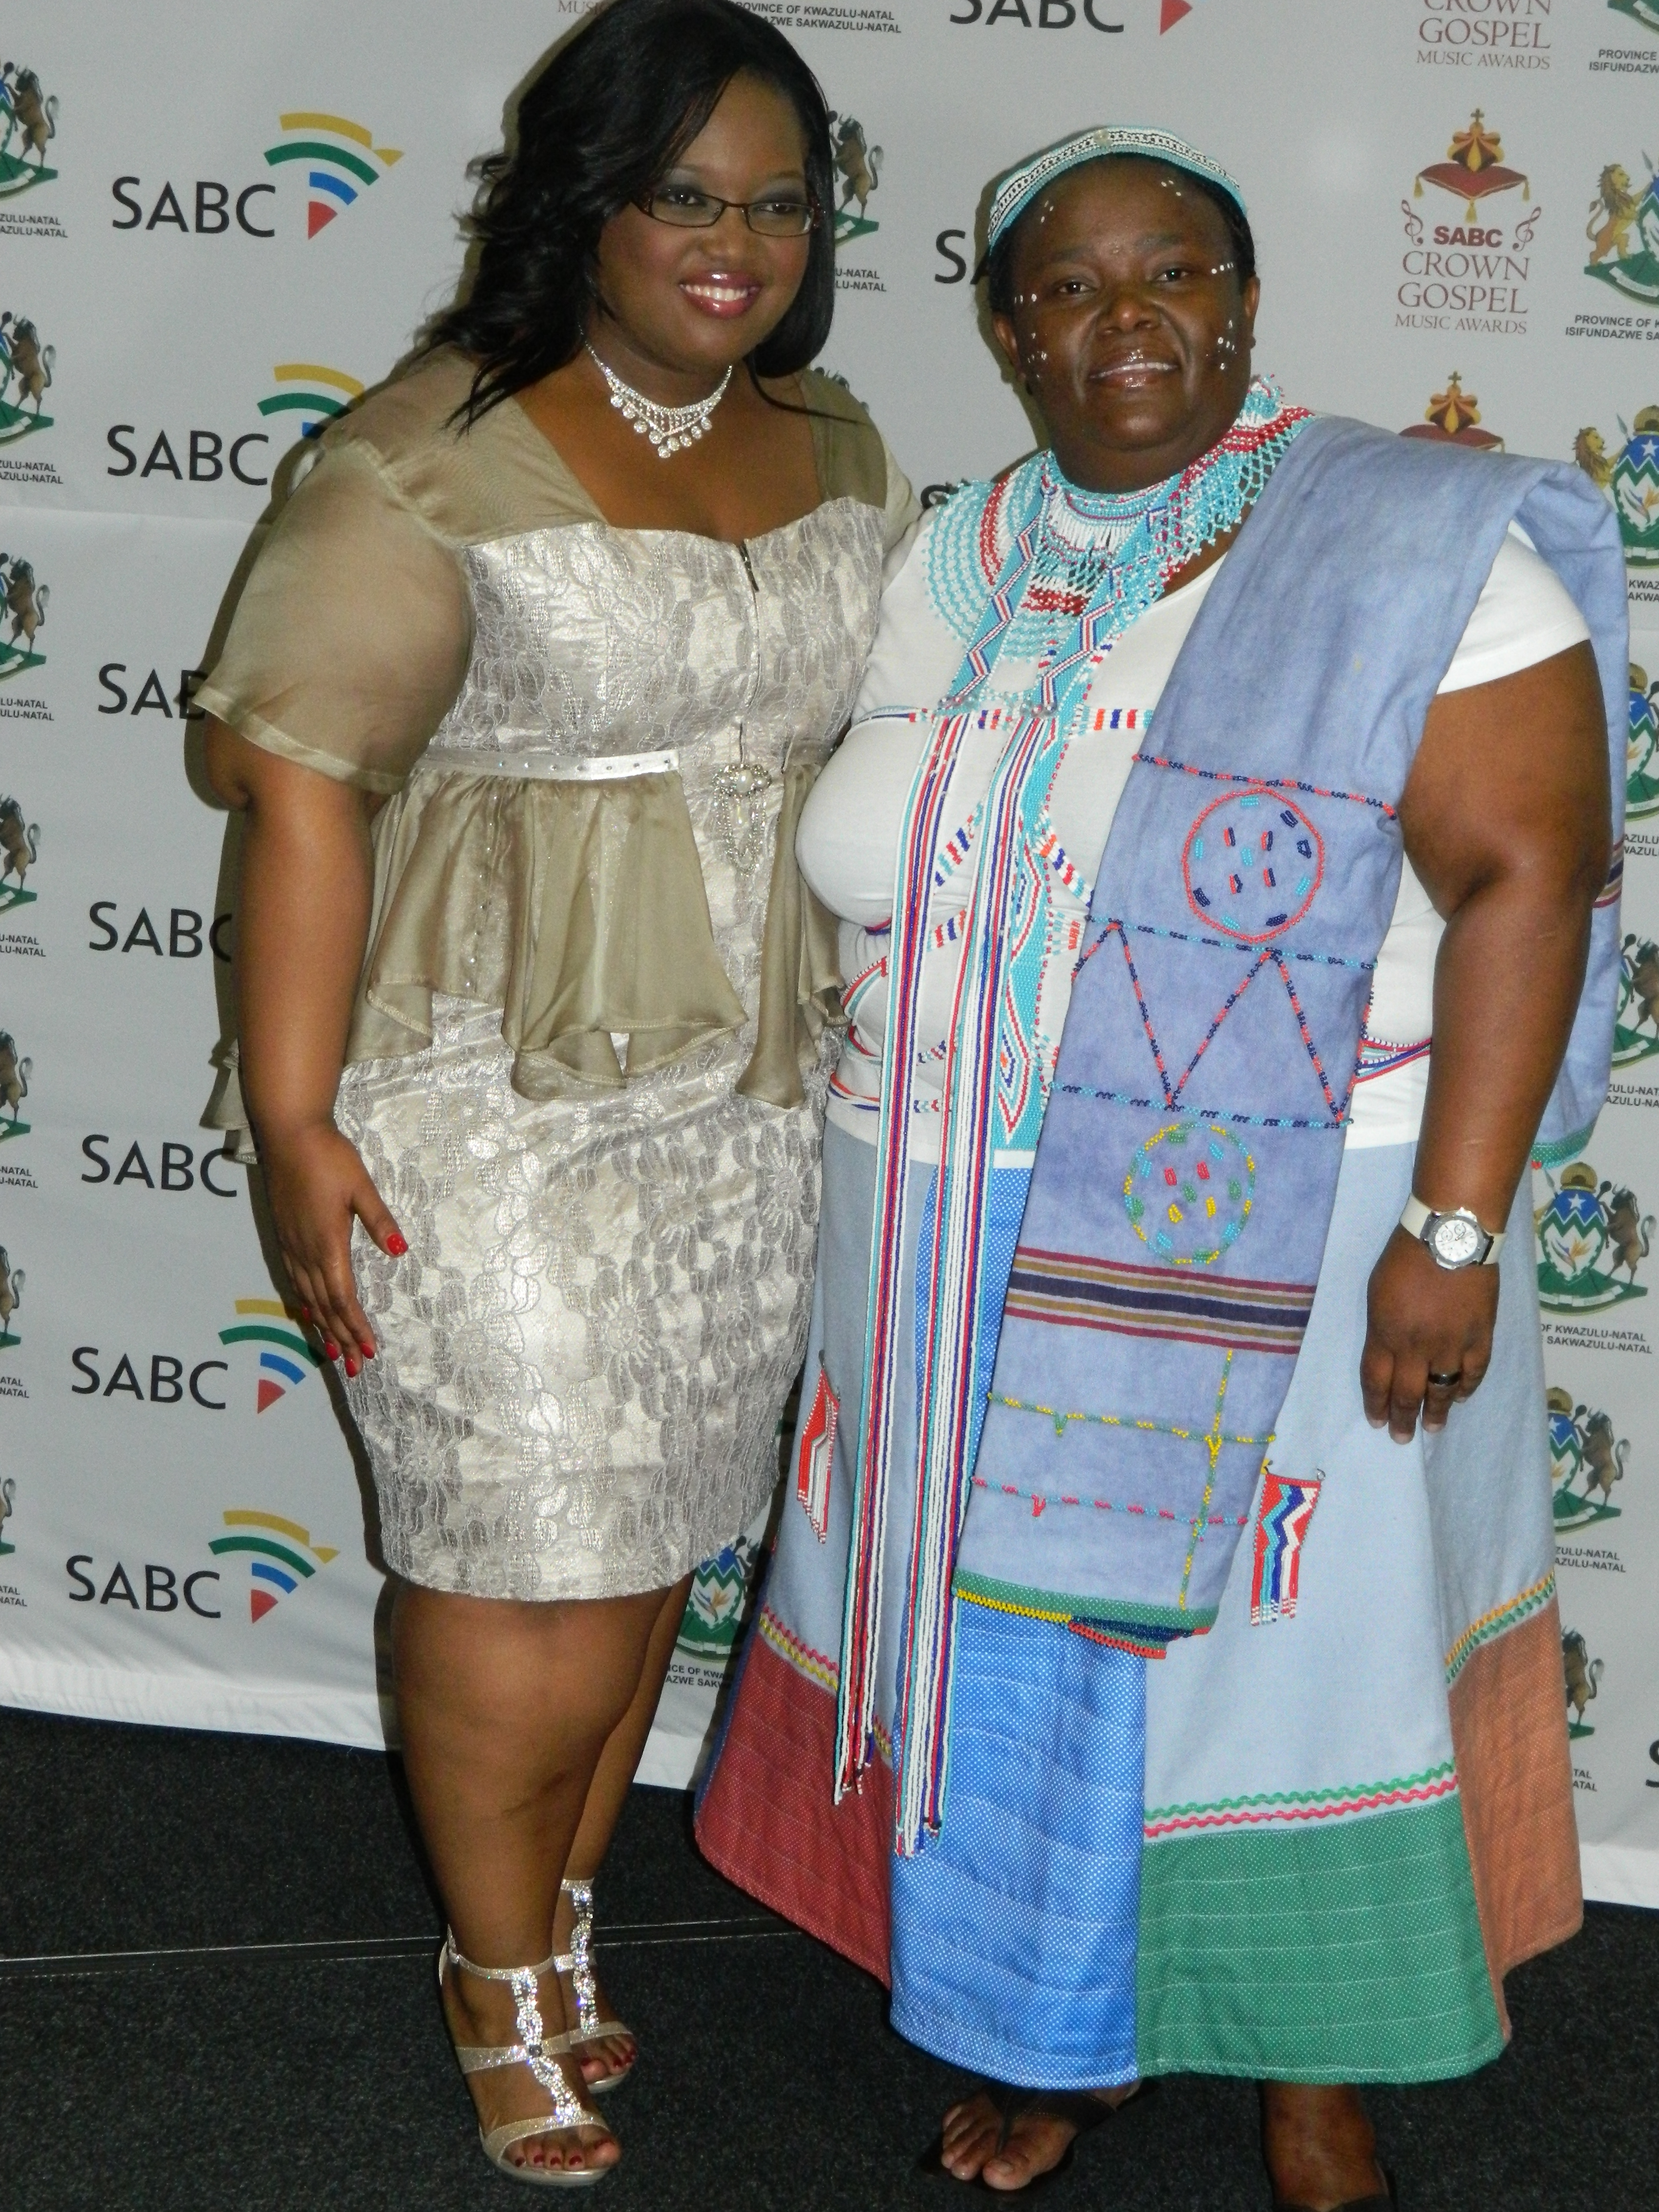 Ntokozo Mbambo Wedding http://radiobiz.co.za/2012/11/20/sabc-crown